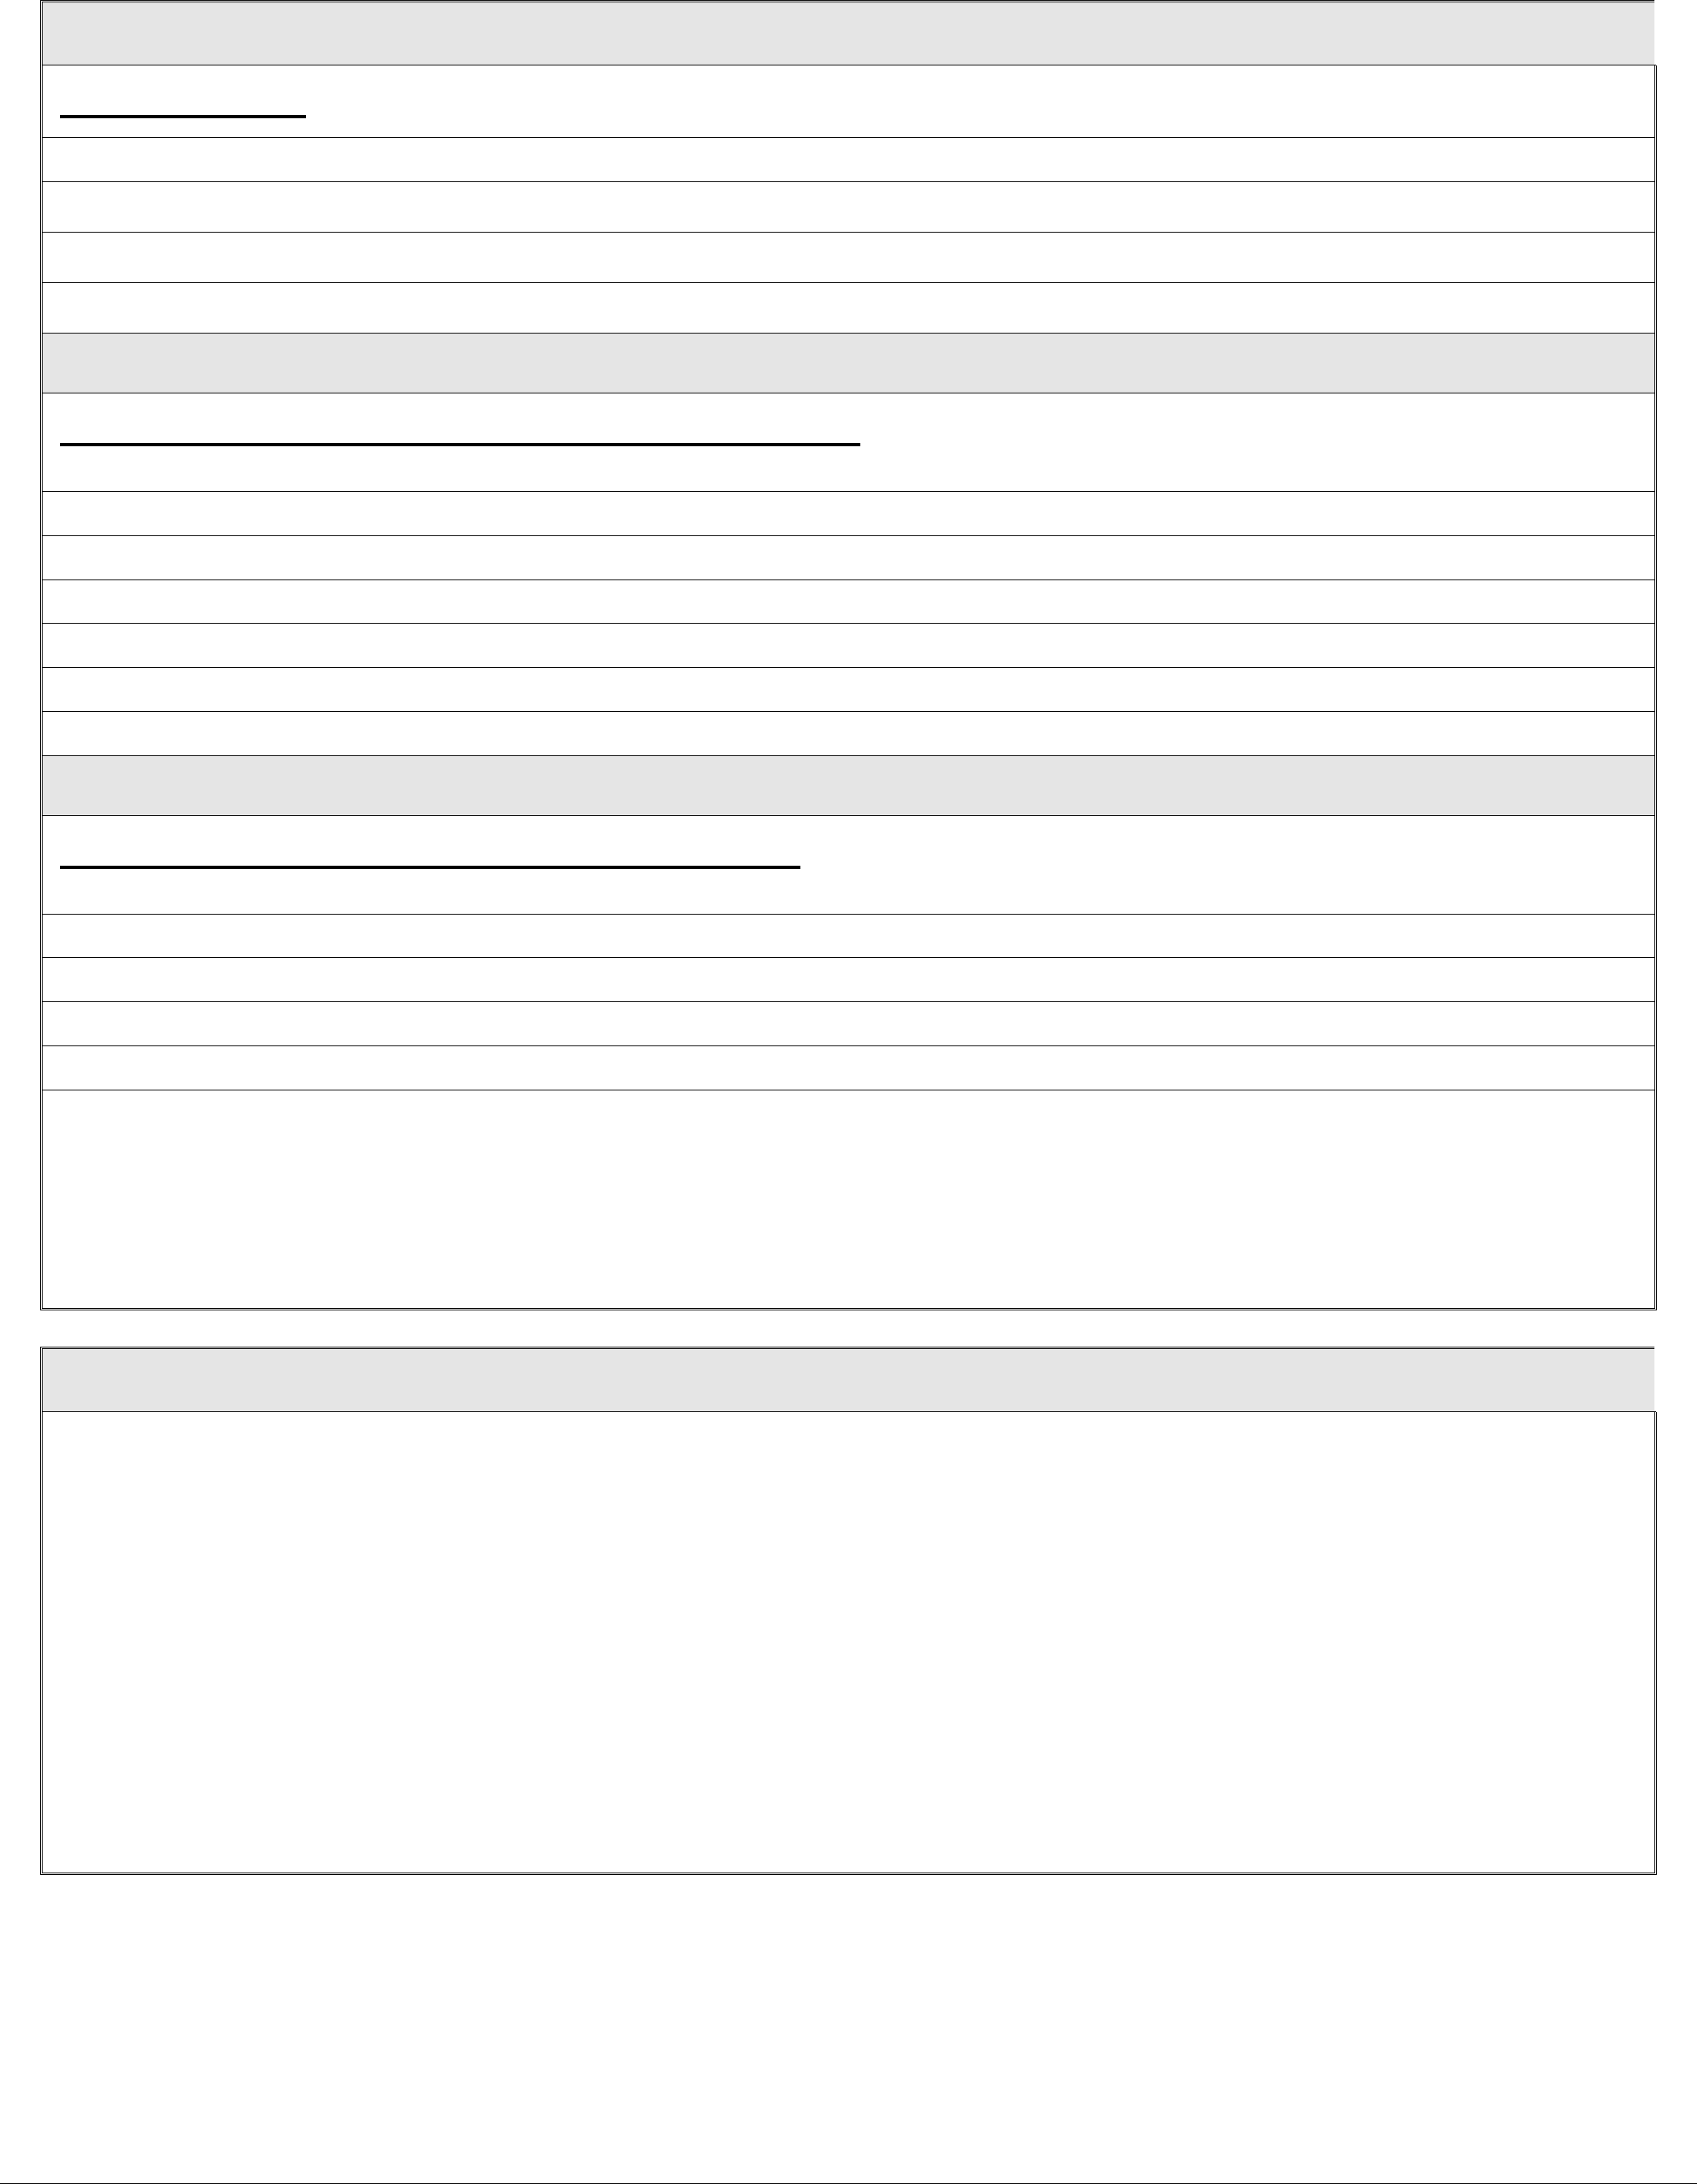 Employee Evaluation Form Sample Free Download